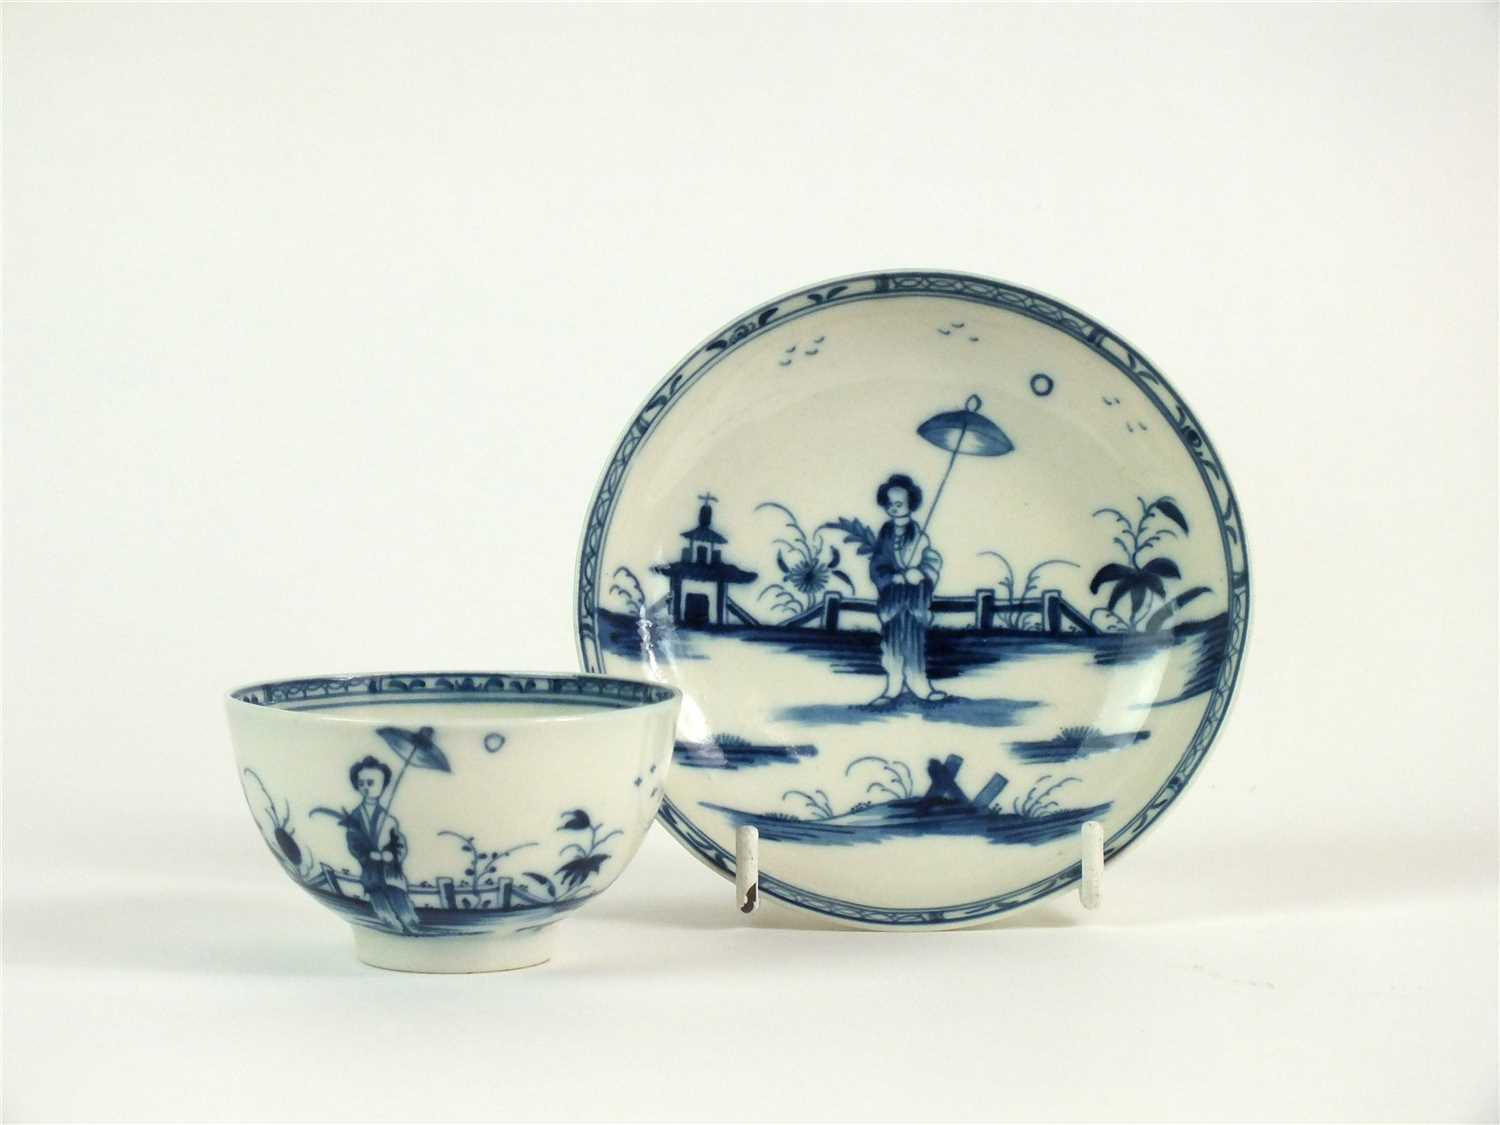 Lot 13-A Caughley porcelain 'Girl with Parasol' tea bowl and saucer